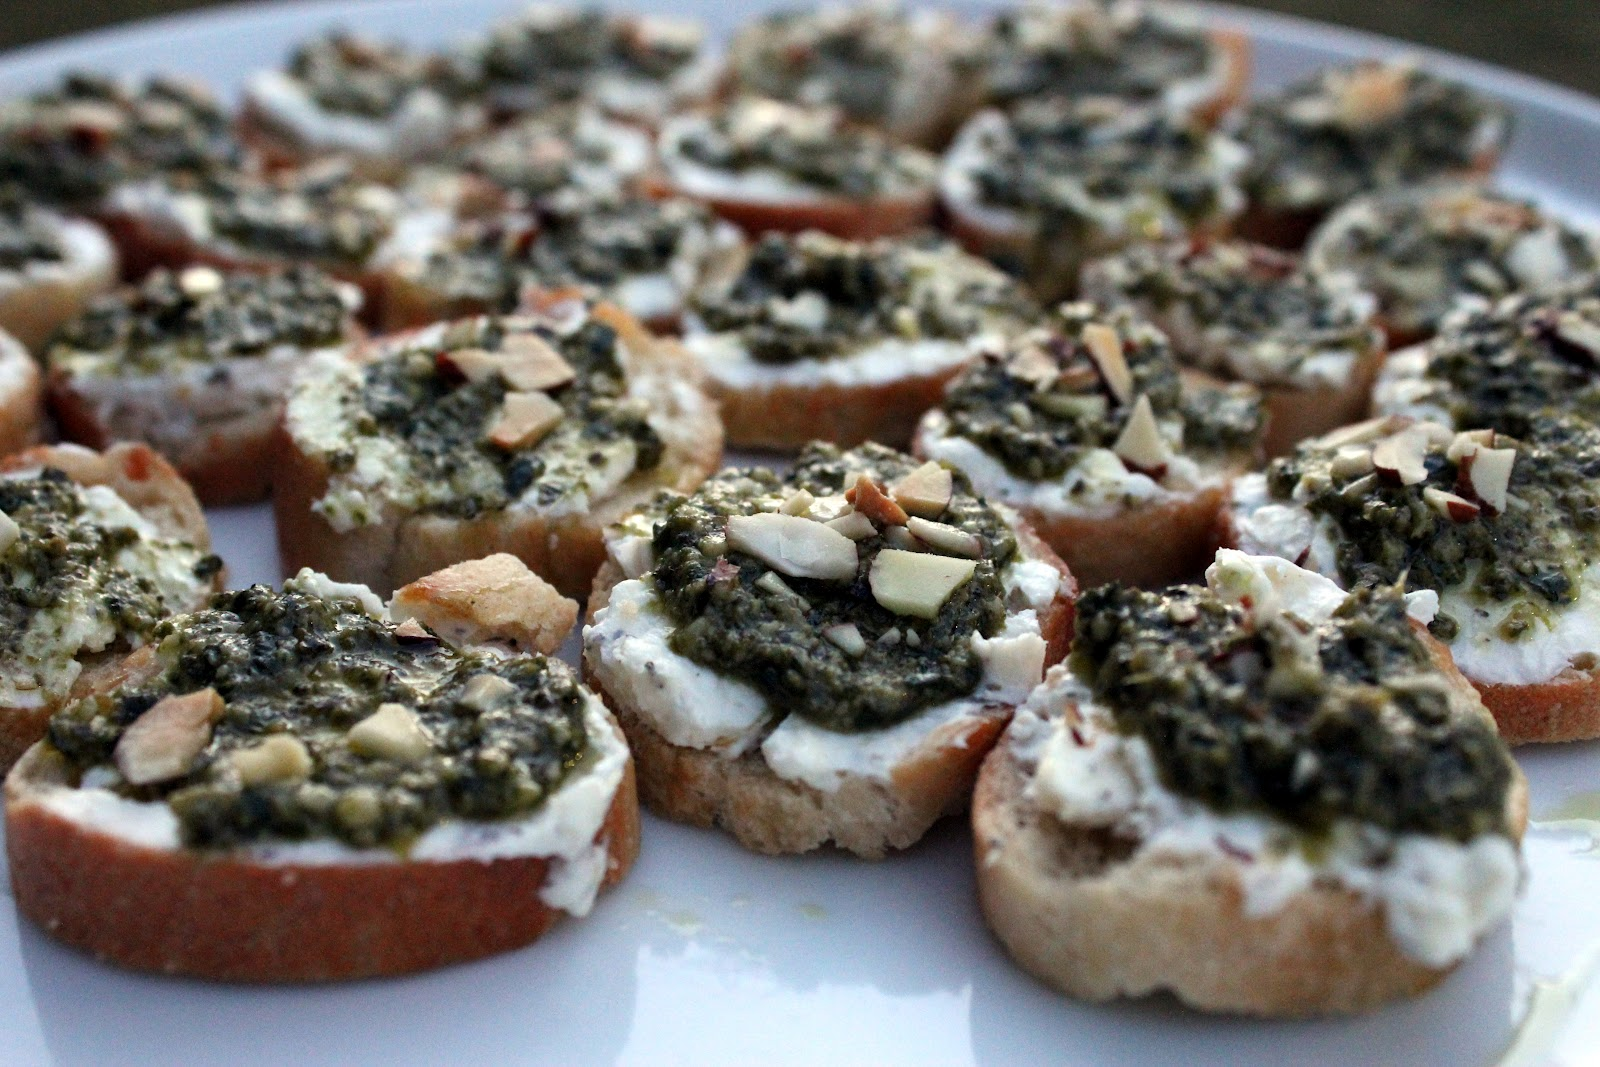 She showed up with these Goat Cheese Pesto Crostini and within minutes ...